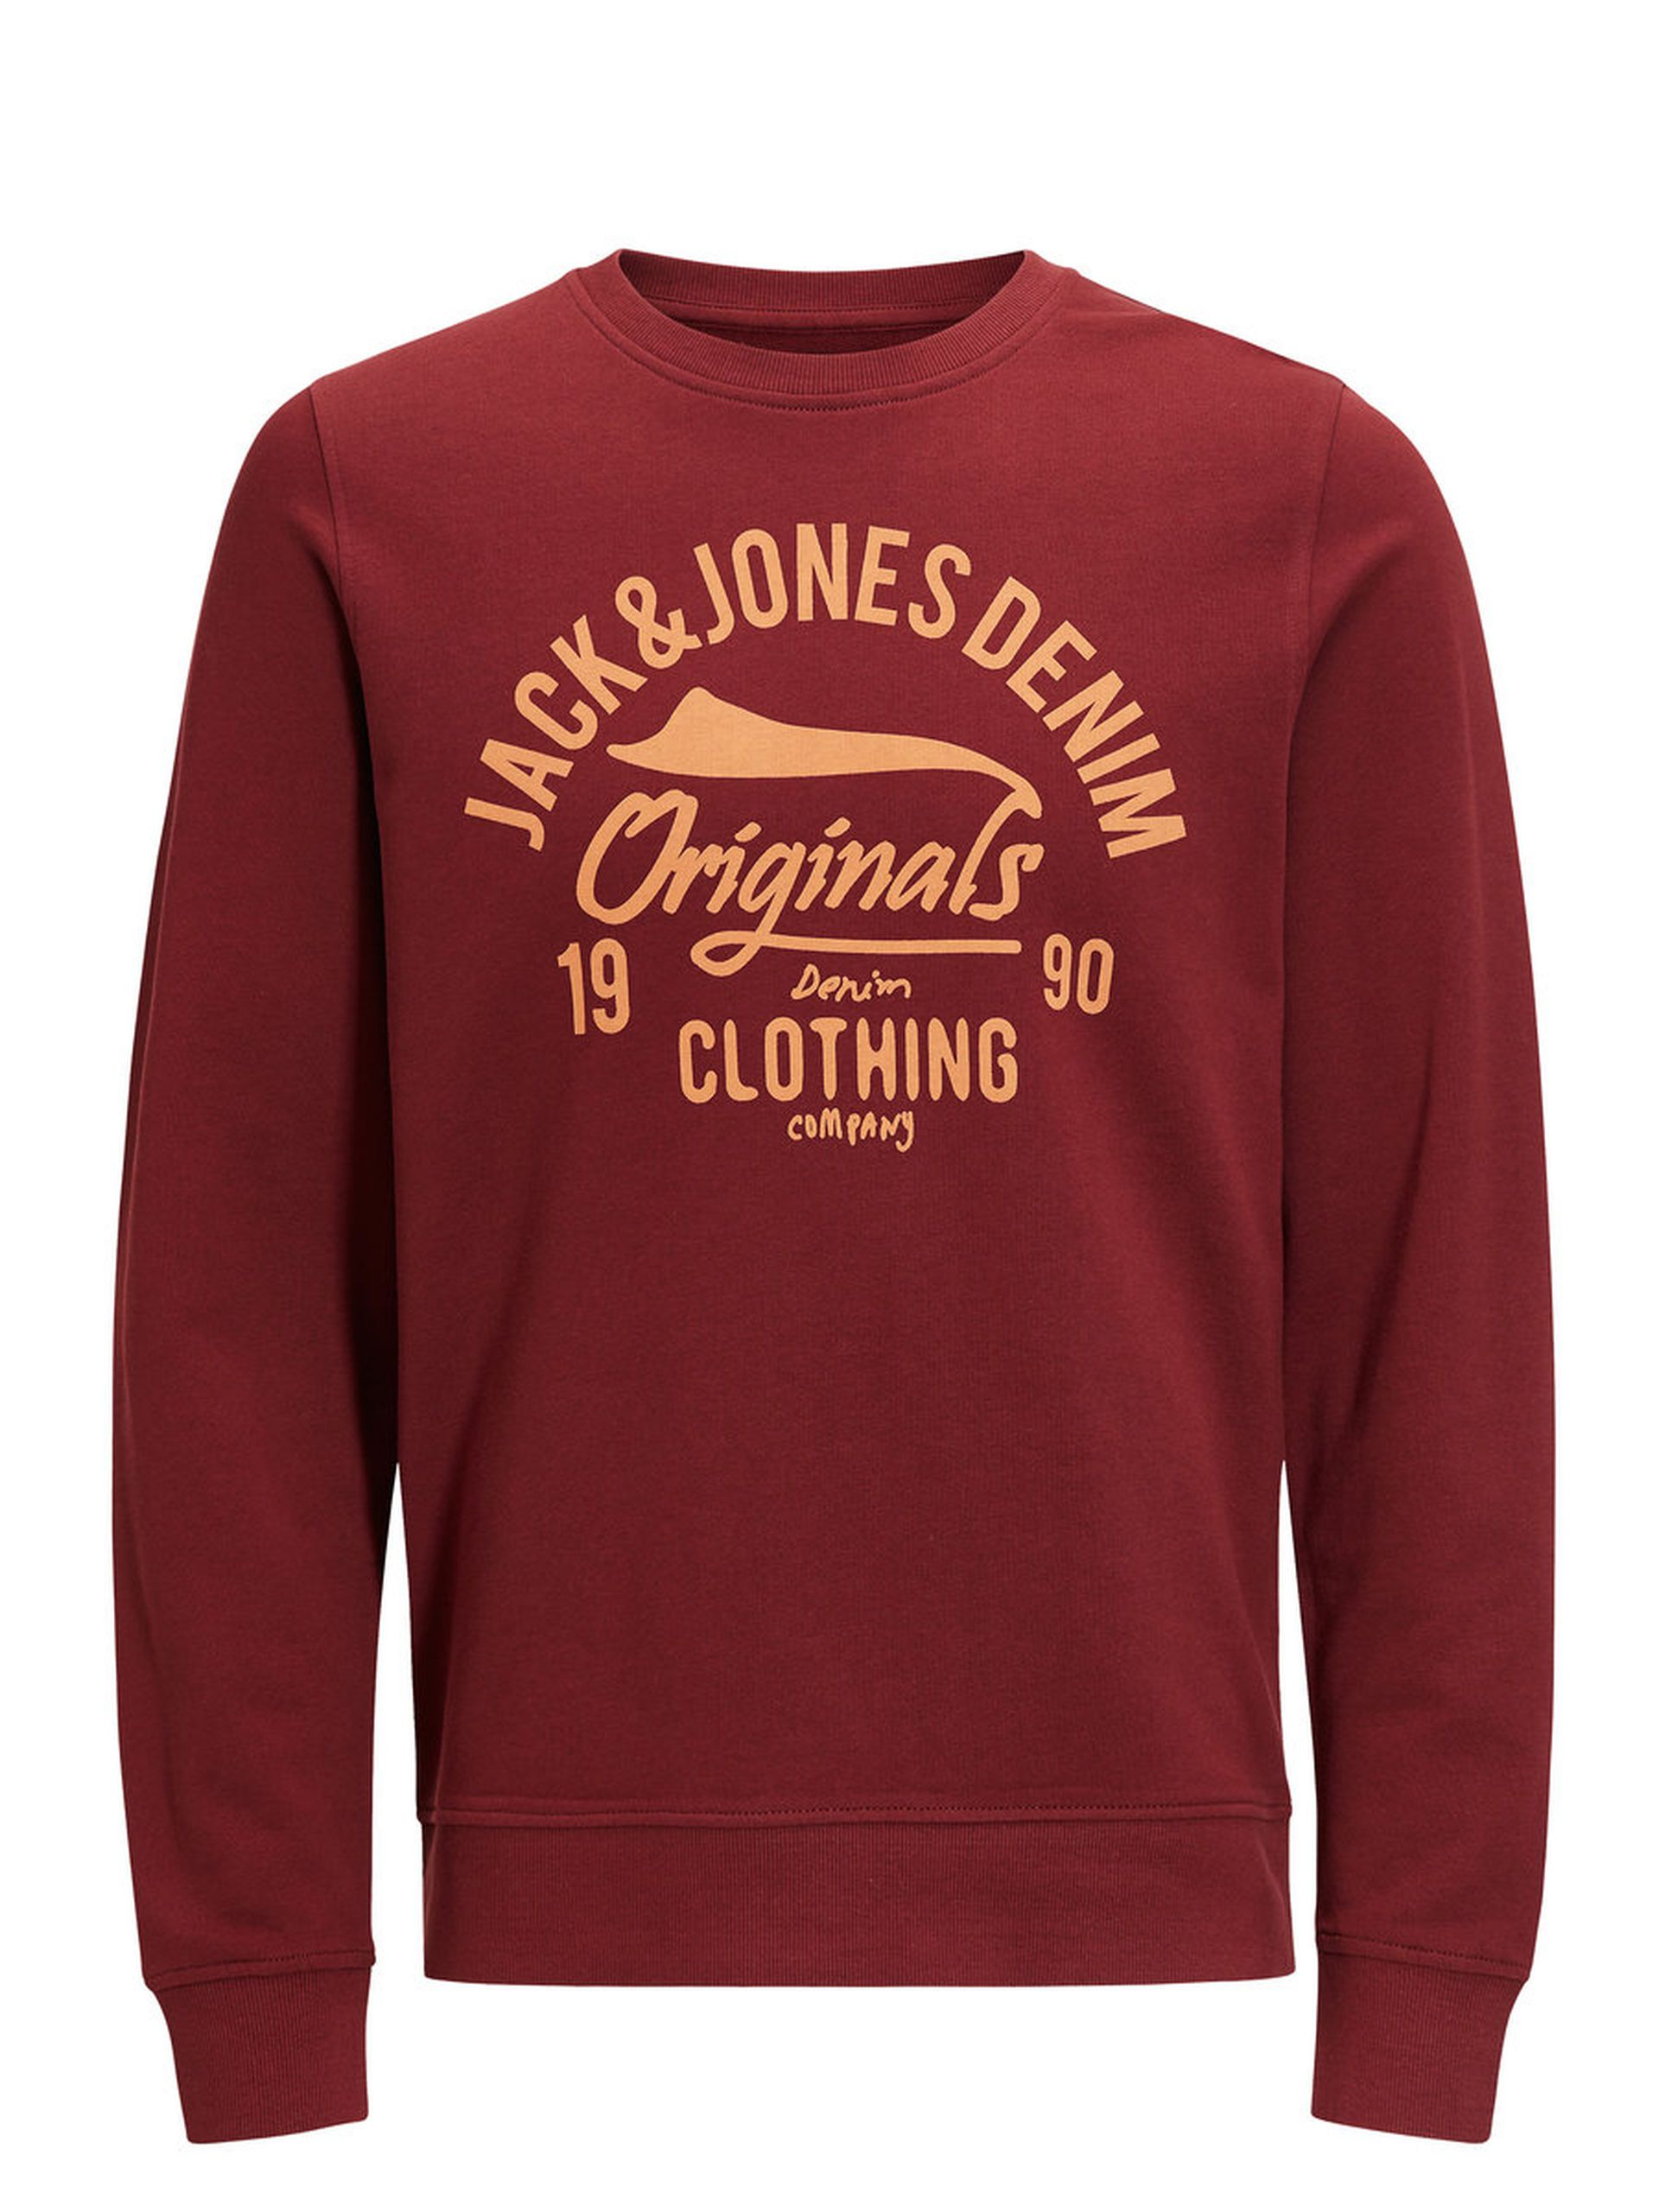 Red Casual Sweatshirt With Chest Print 100 Cotton For Everyday Wear Jack Jones Casual Sweatshirt Tee Shirts Fashion 2020 [ 2560 x 1920 Pixel ]